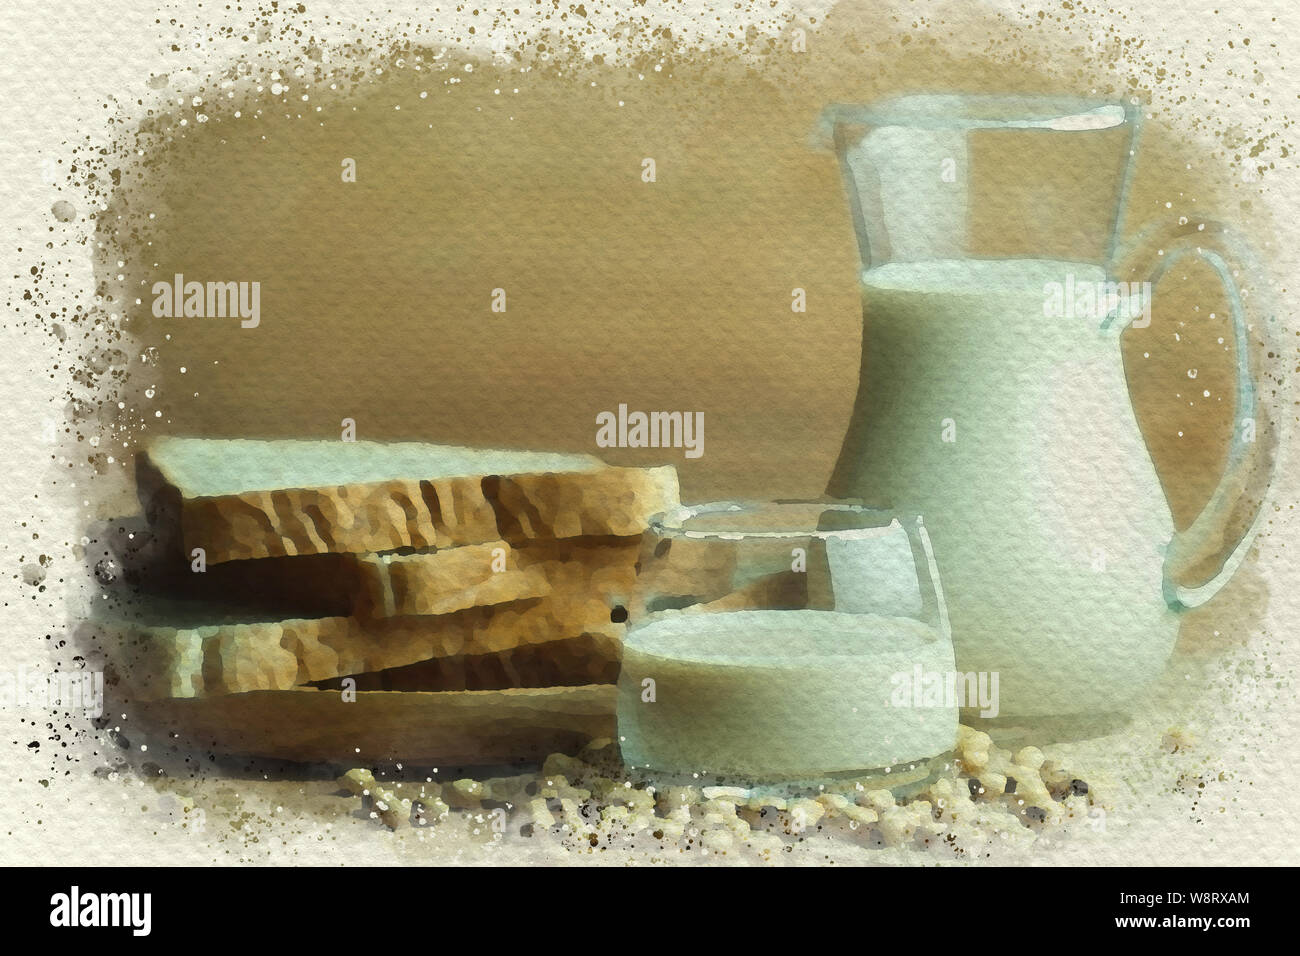 Wheat Bread And Soy Milk On Wooden Table Breakfast Time In Morning Digital Watercolor Painting Effect Stock Photo Alamy